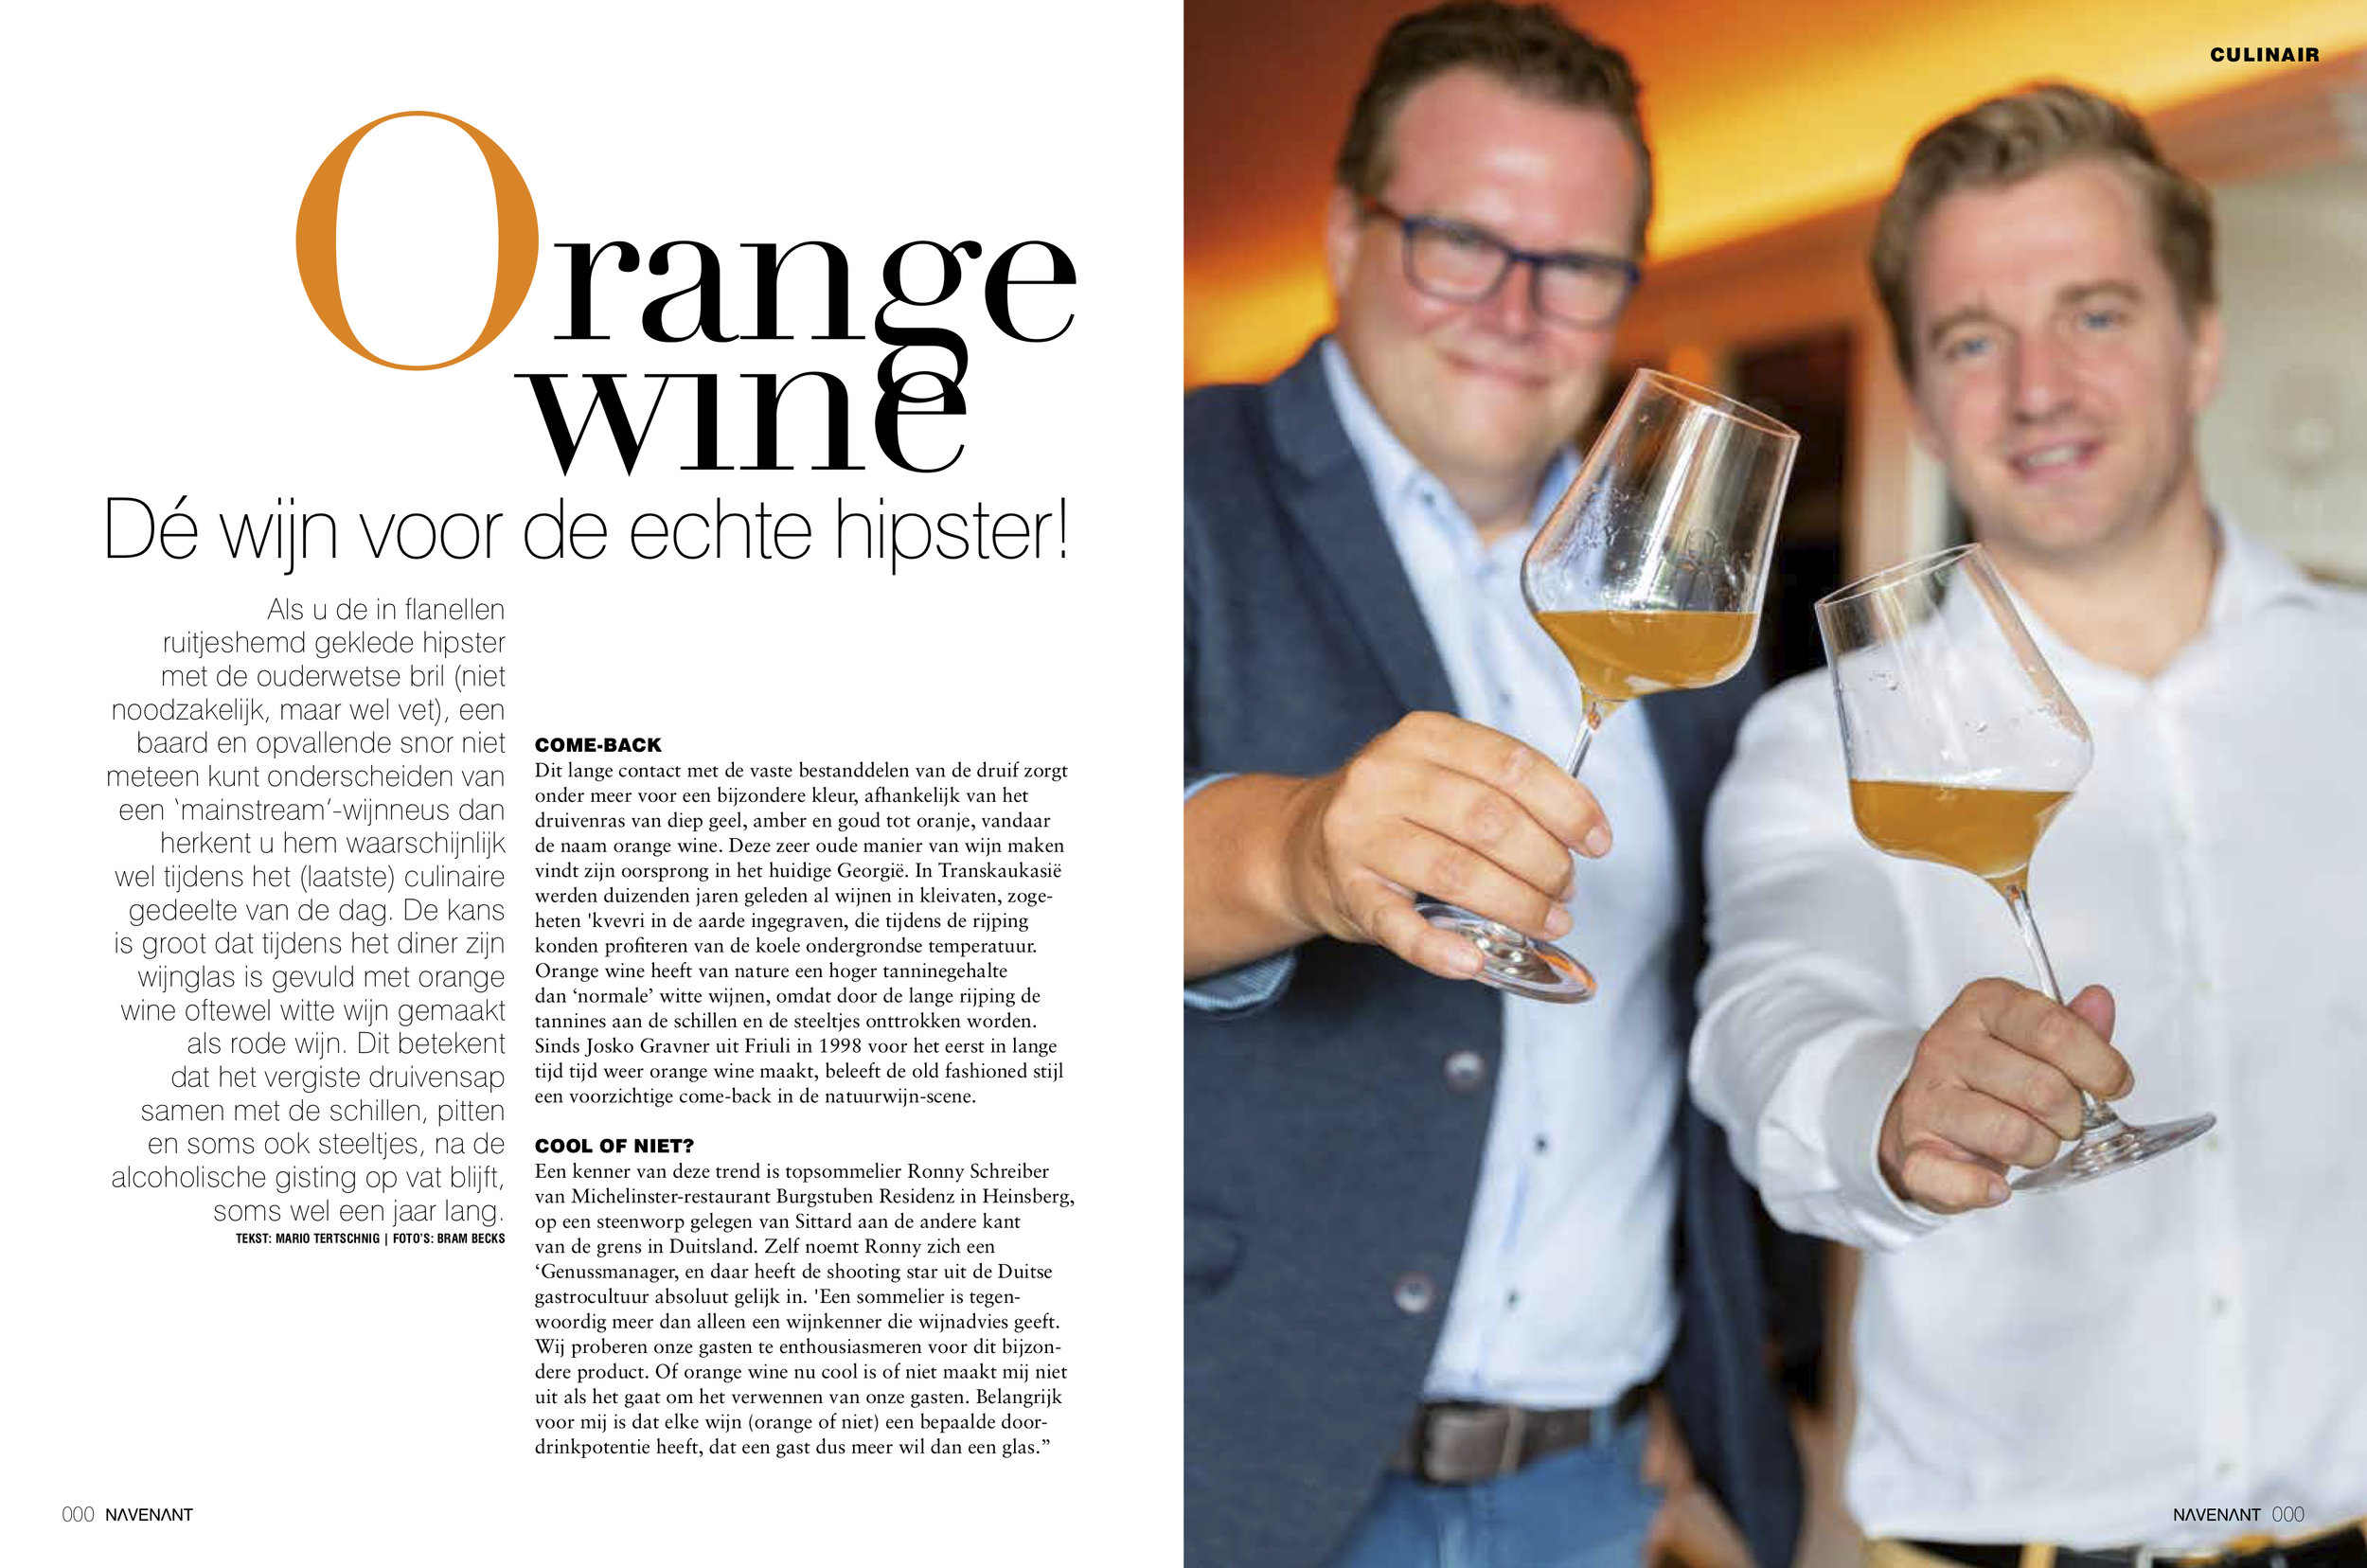 Orange wine artikel.jpg